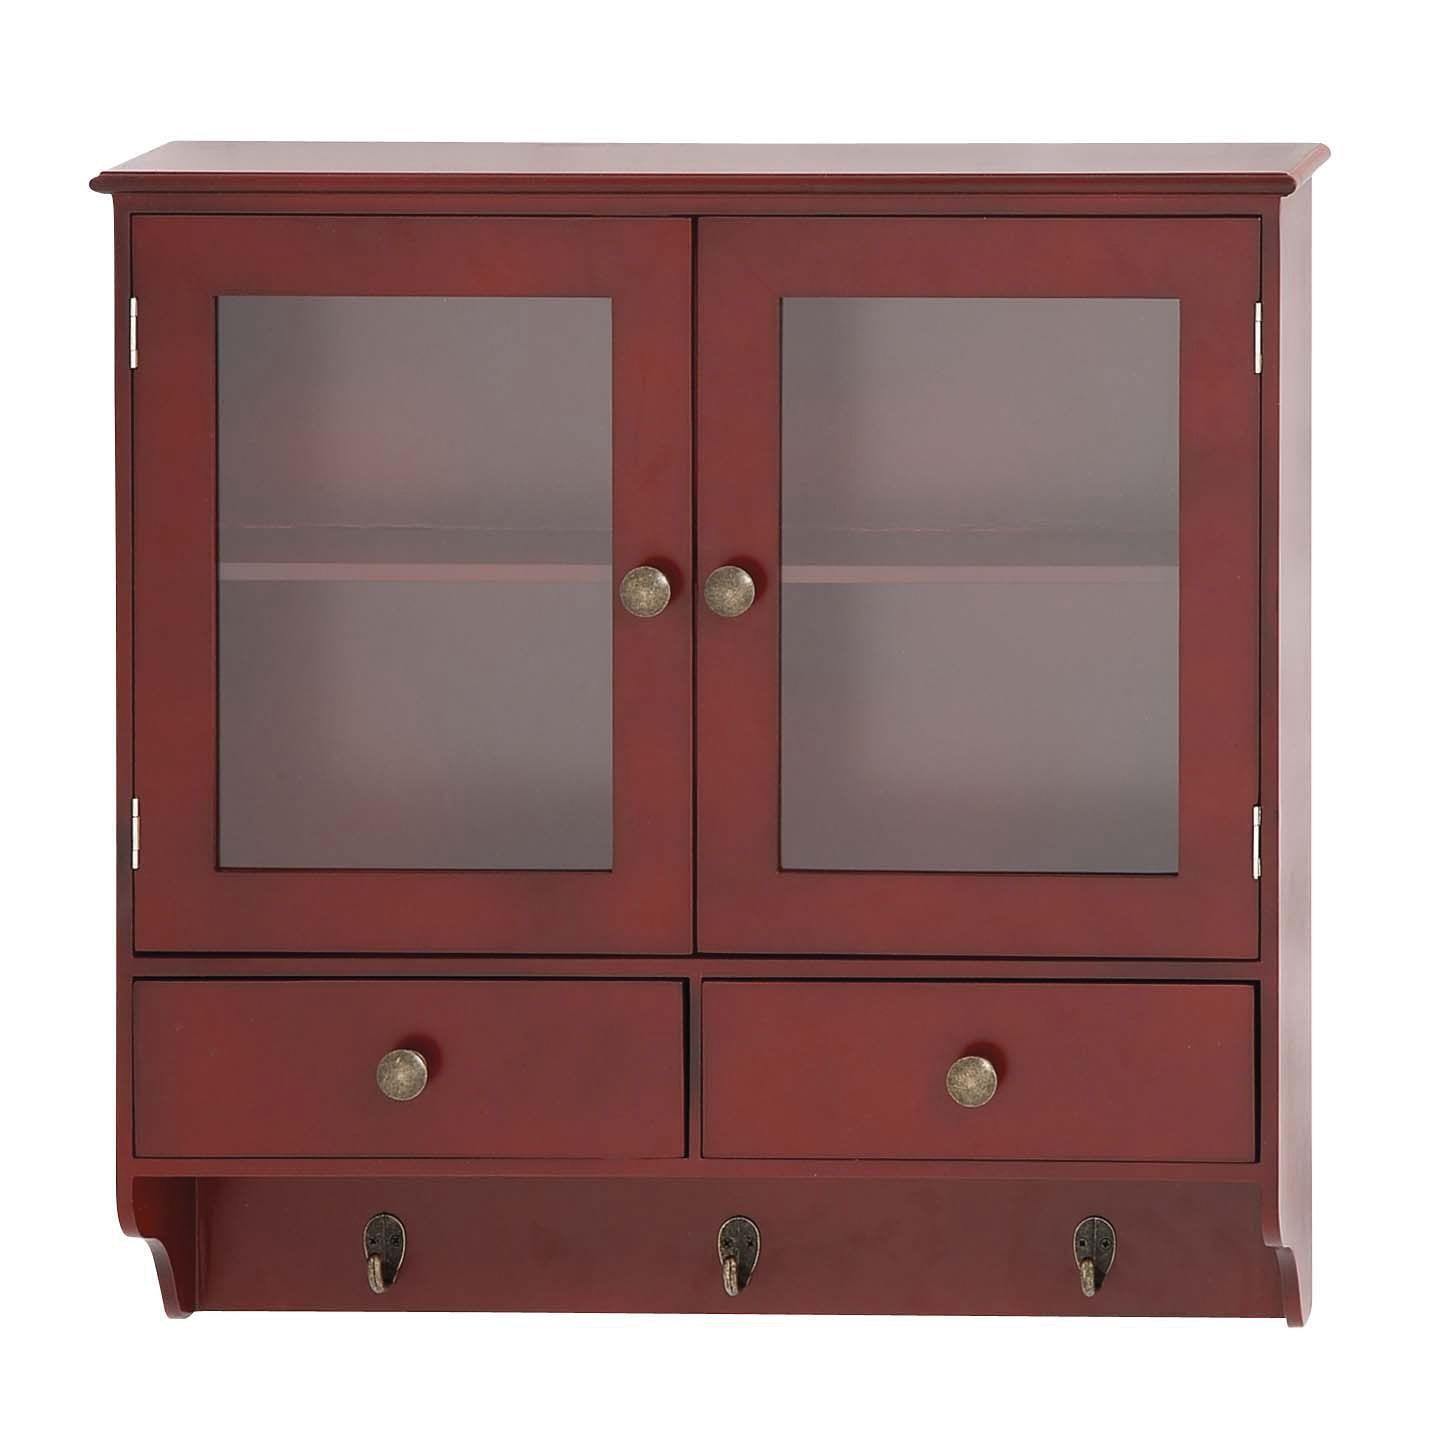 Contemporary Brown Wood Wall Cabinet Shelf Hook Drawers ...